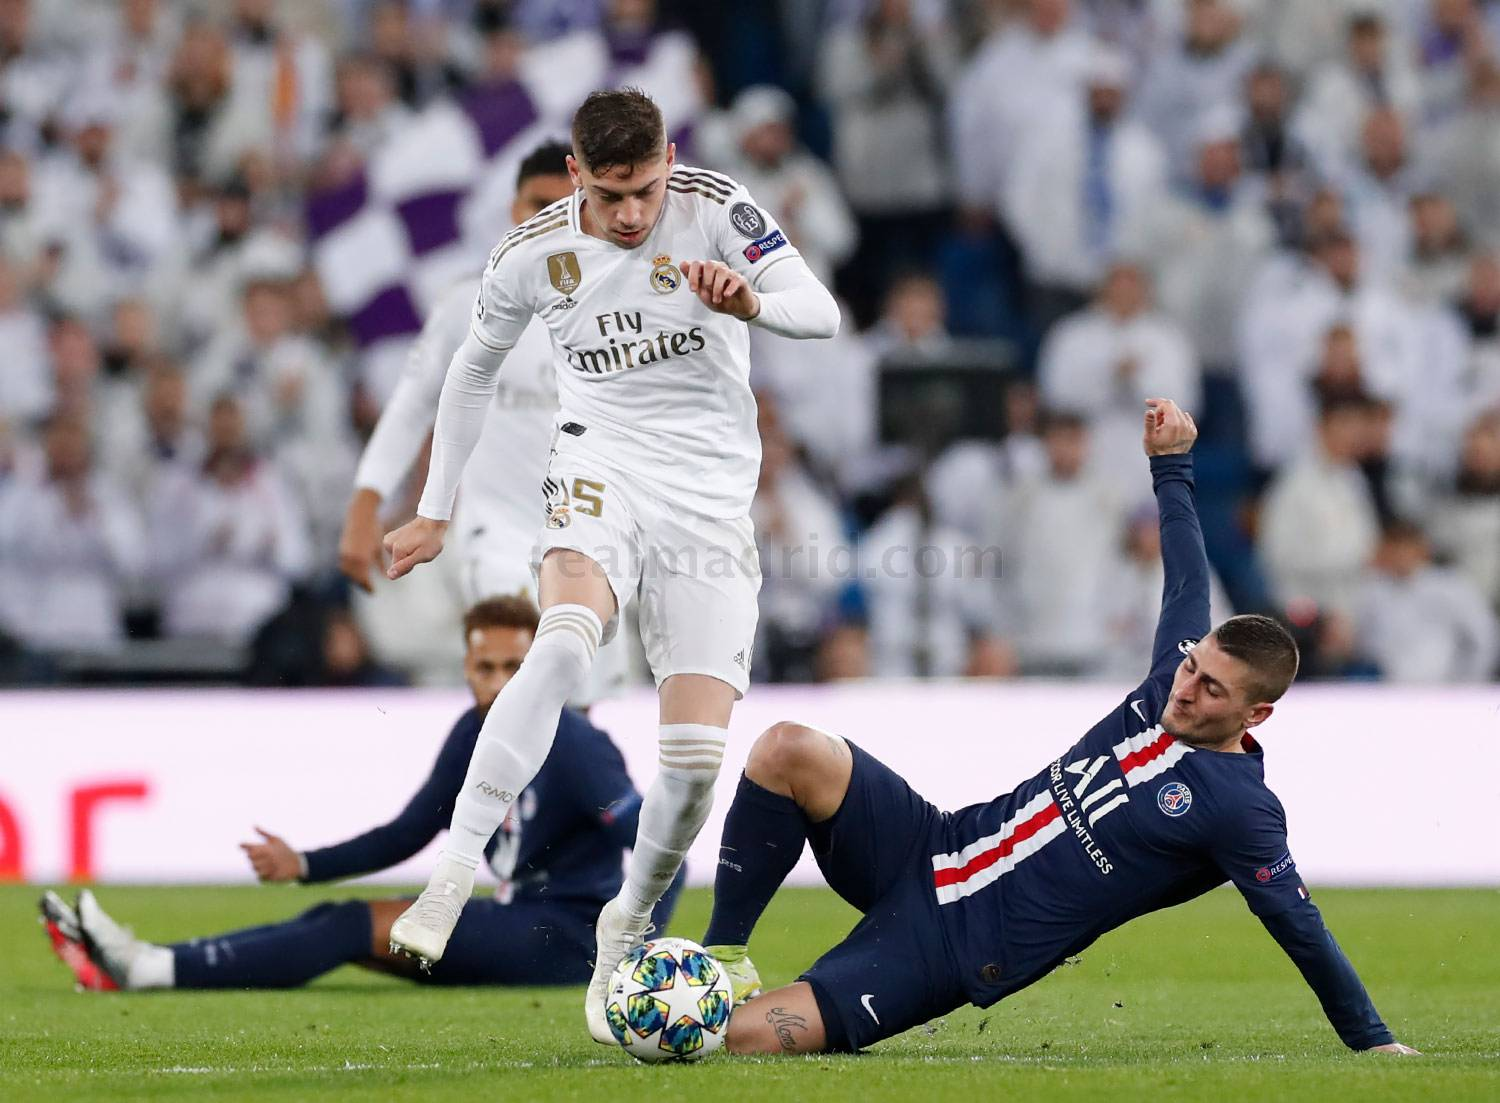 Real Madrid - Real Madrid - PSG - 26-11-2019